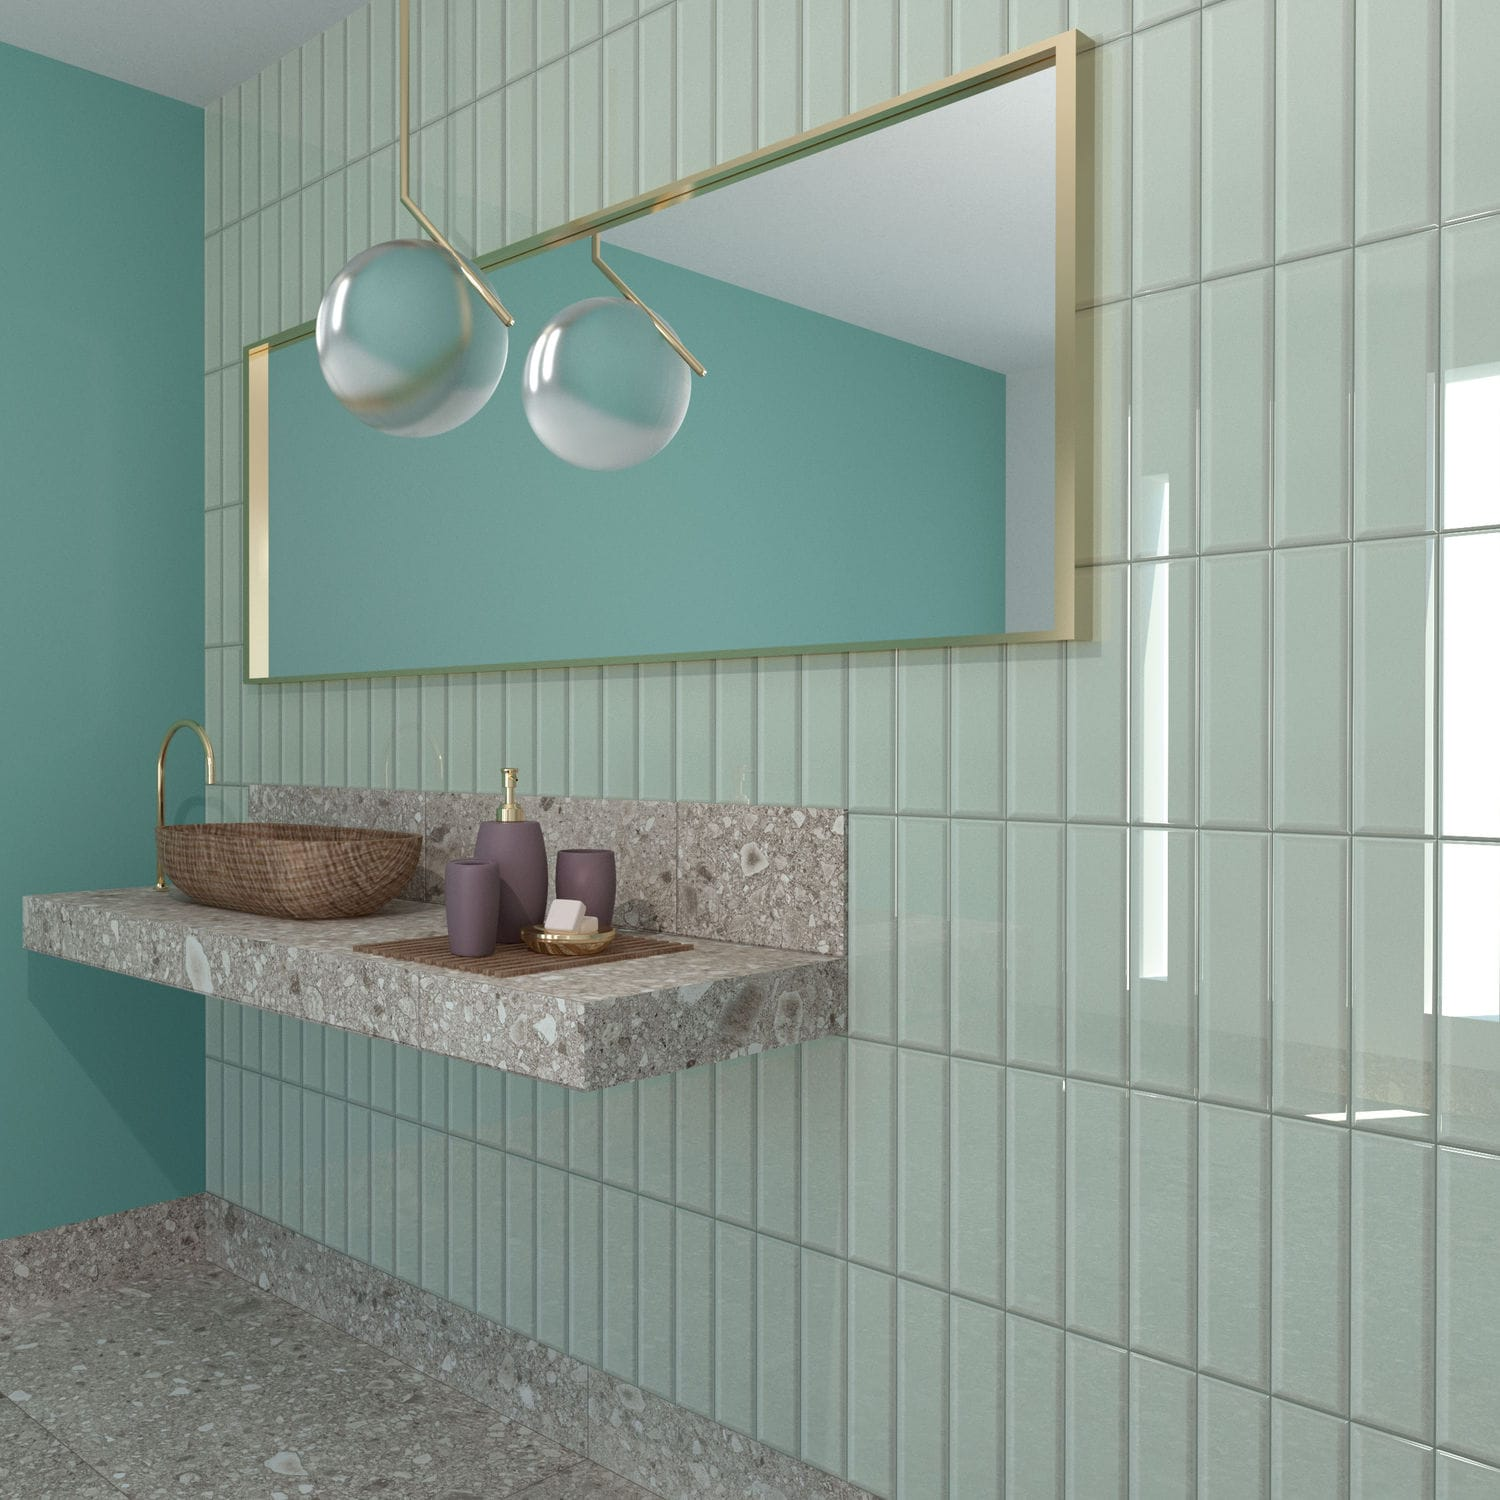 Indoor tile / wall / ceramic / rectangular - MANUFATTO - ORNAMENTA